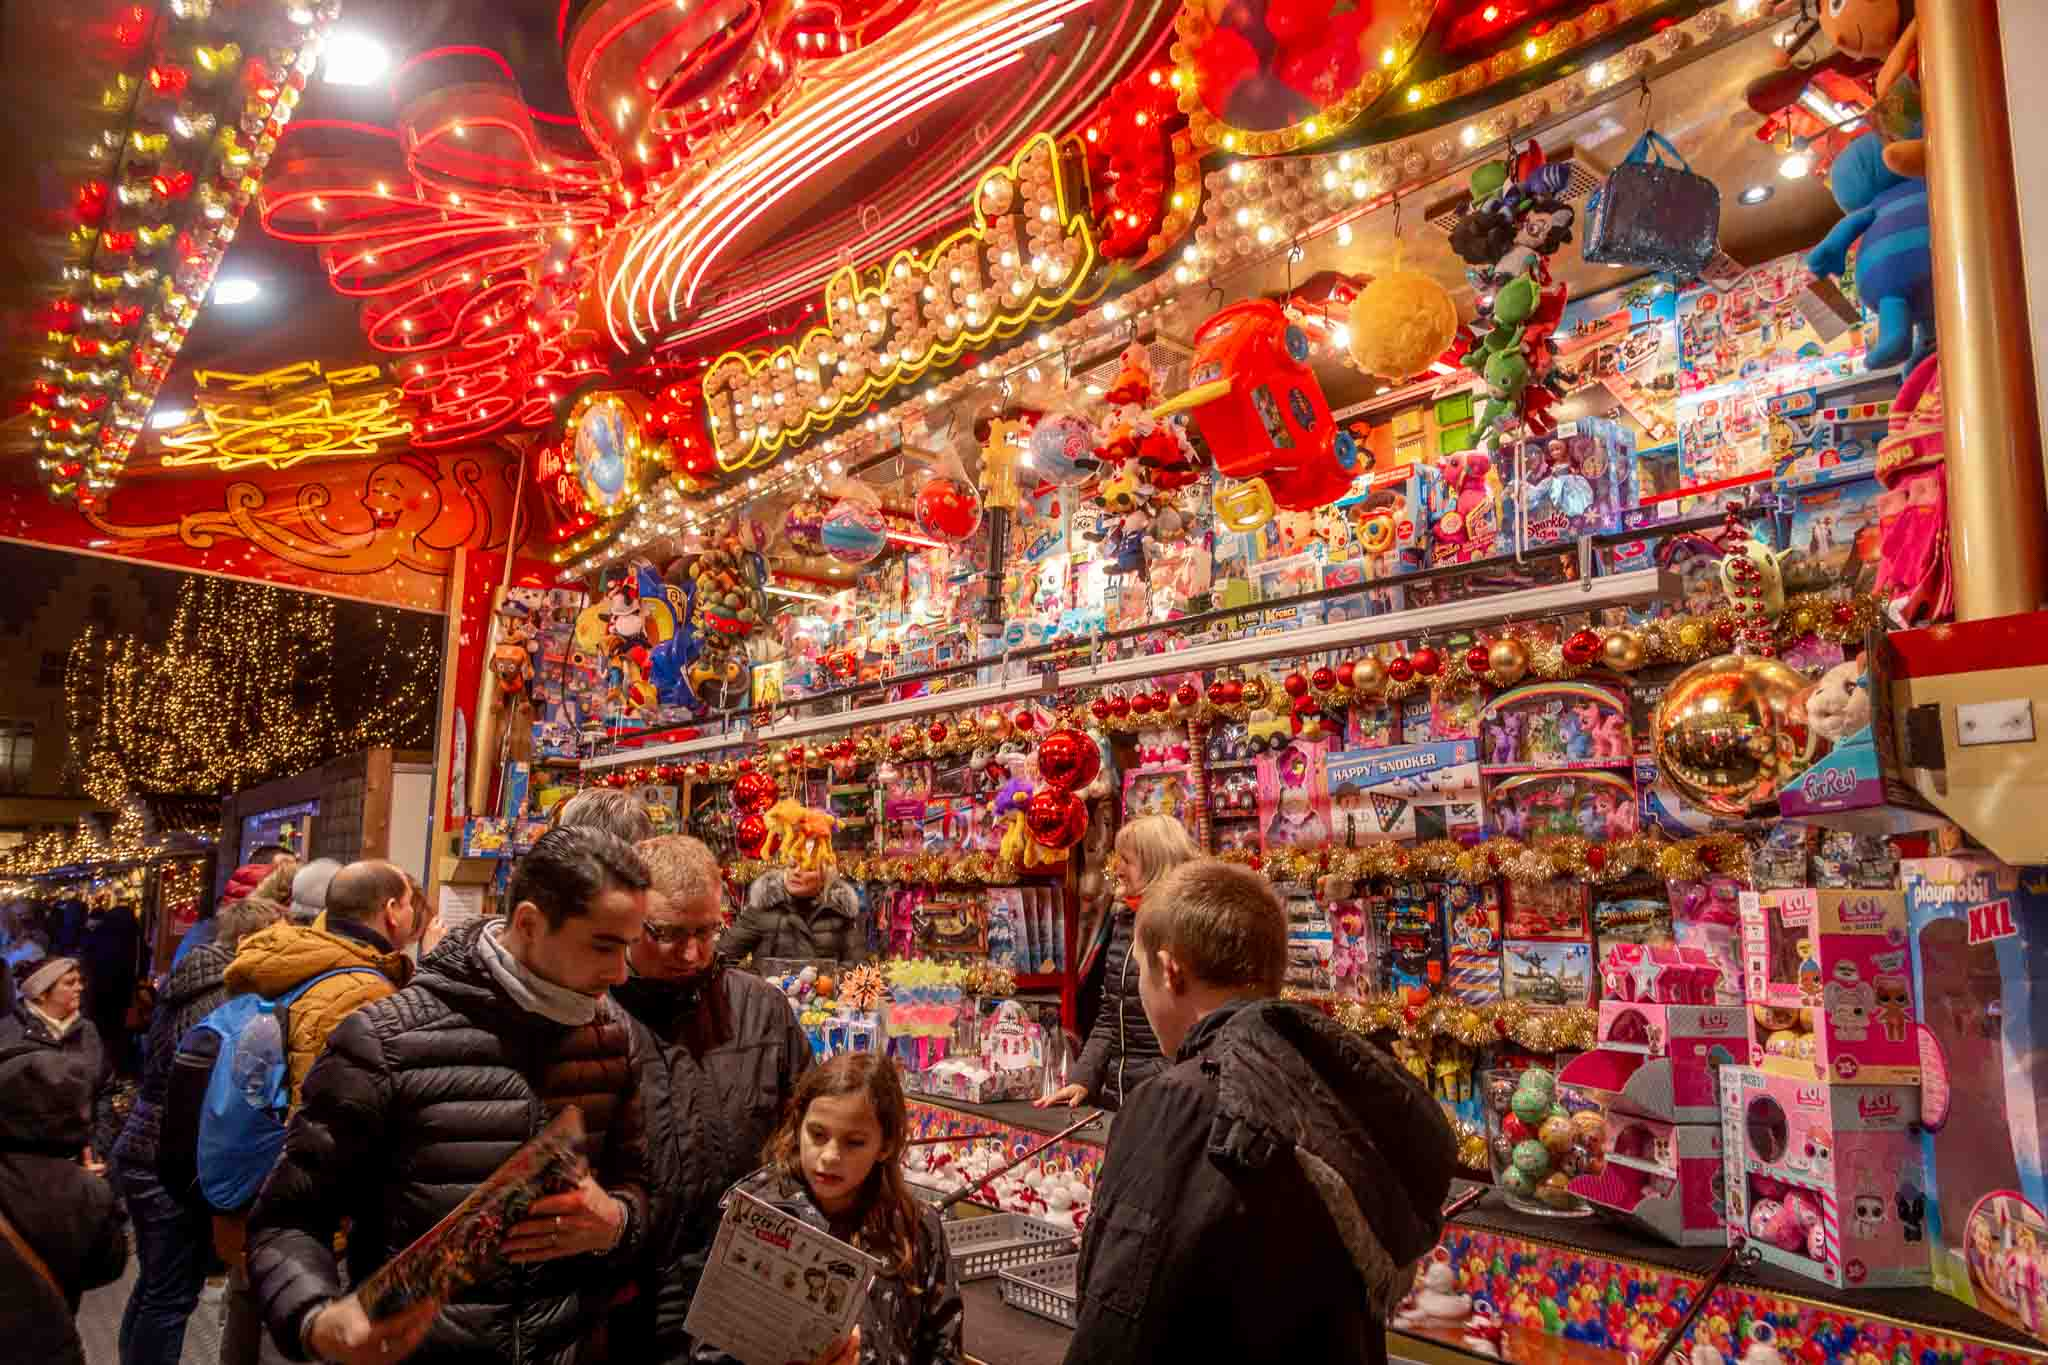 Shopping for toys at one of the brightly lit kiosks